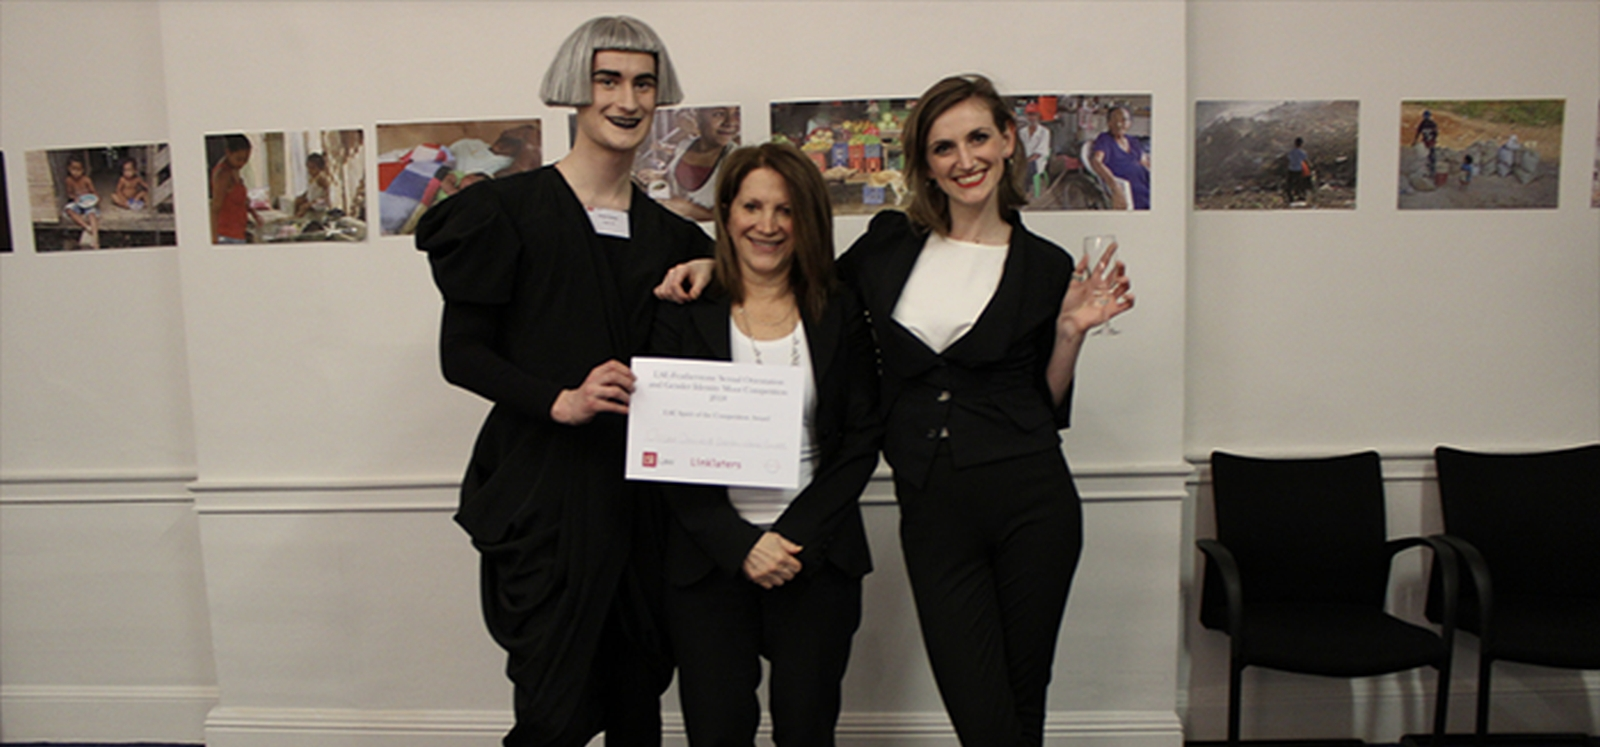 Law students Oscar Davies and Sarah Jane-Ewart pictured with Baroness Featherstone. Image credit: Selina Swift